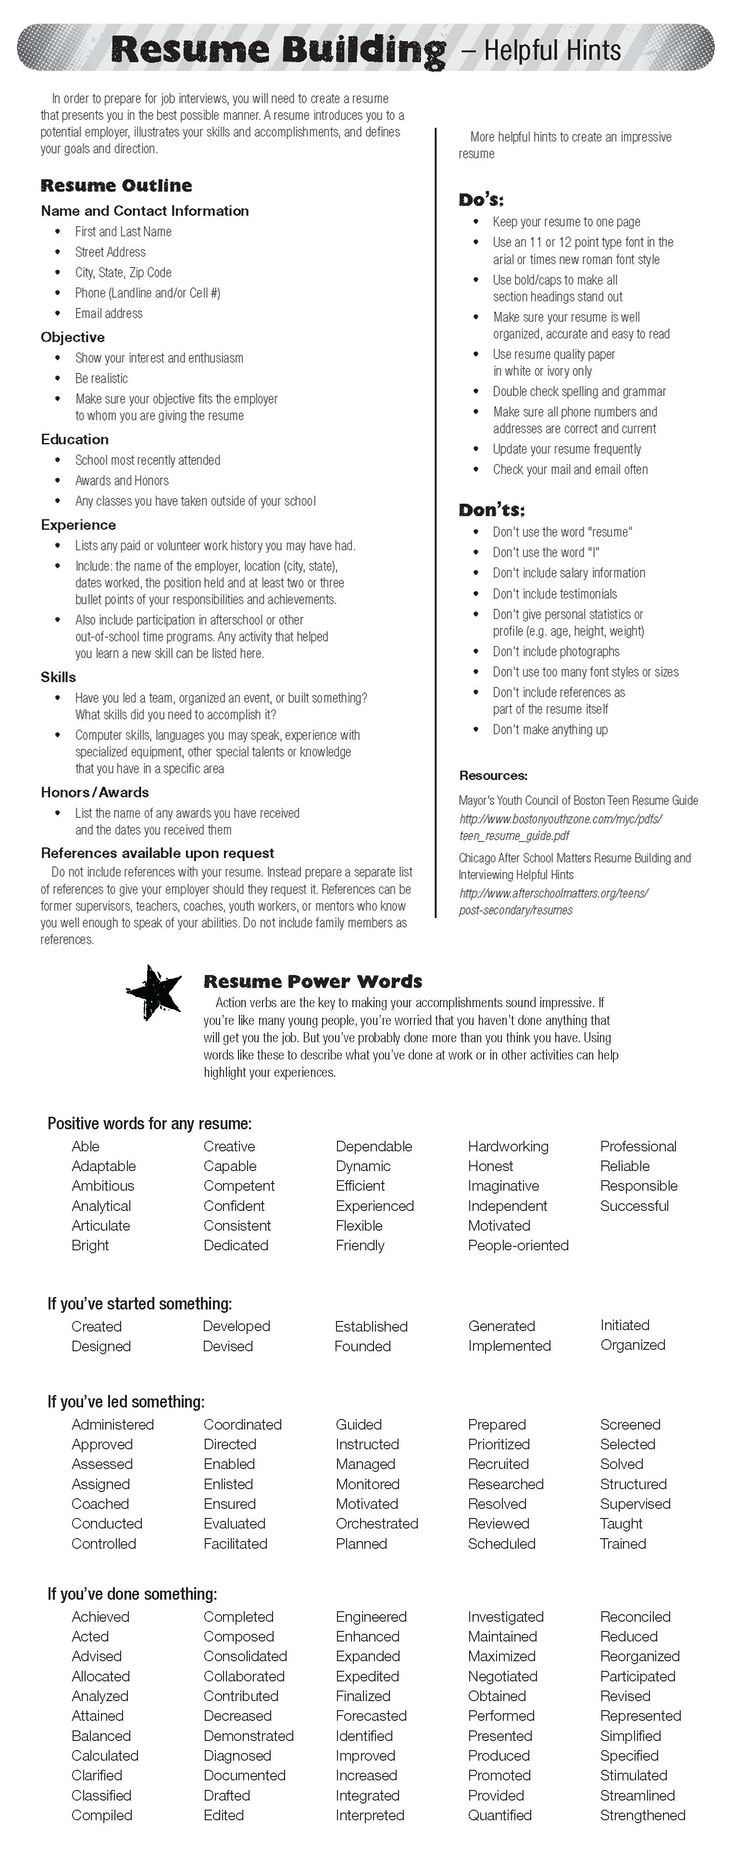 Opposenewapstandardsus  Picturesque  Ideas About Resume On Pinterest  Cv Format Resume  With Extraordinary Check Out Todays Resume Building Tips Resume Resumepowerwords With Agreeable Beta Gamma Sigma Resume Also Resume Writer San Diego In Addition Office Manager Resume Template And A Cover Letter For A Resume As Well As How To Make A Resum Additionally Sample Sales Manager Resume From Pinterestcom With Opposenewapstandardsus  Extraordinary  Ideas About Resume On Pinterest  Cv Format Resume  With Agreeable Check Out Todays Resume Building Tips Resume Resumepowerwords And Picturesque Beta Gamma Sigma Resume Also Resume Writer San Diego In Addition Office Manager Resume Template From Pinterestcom